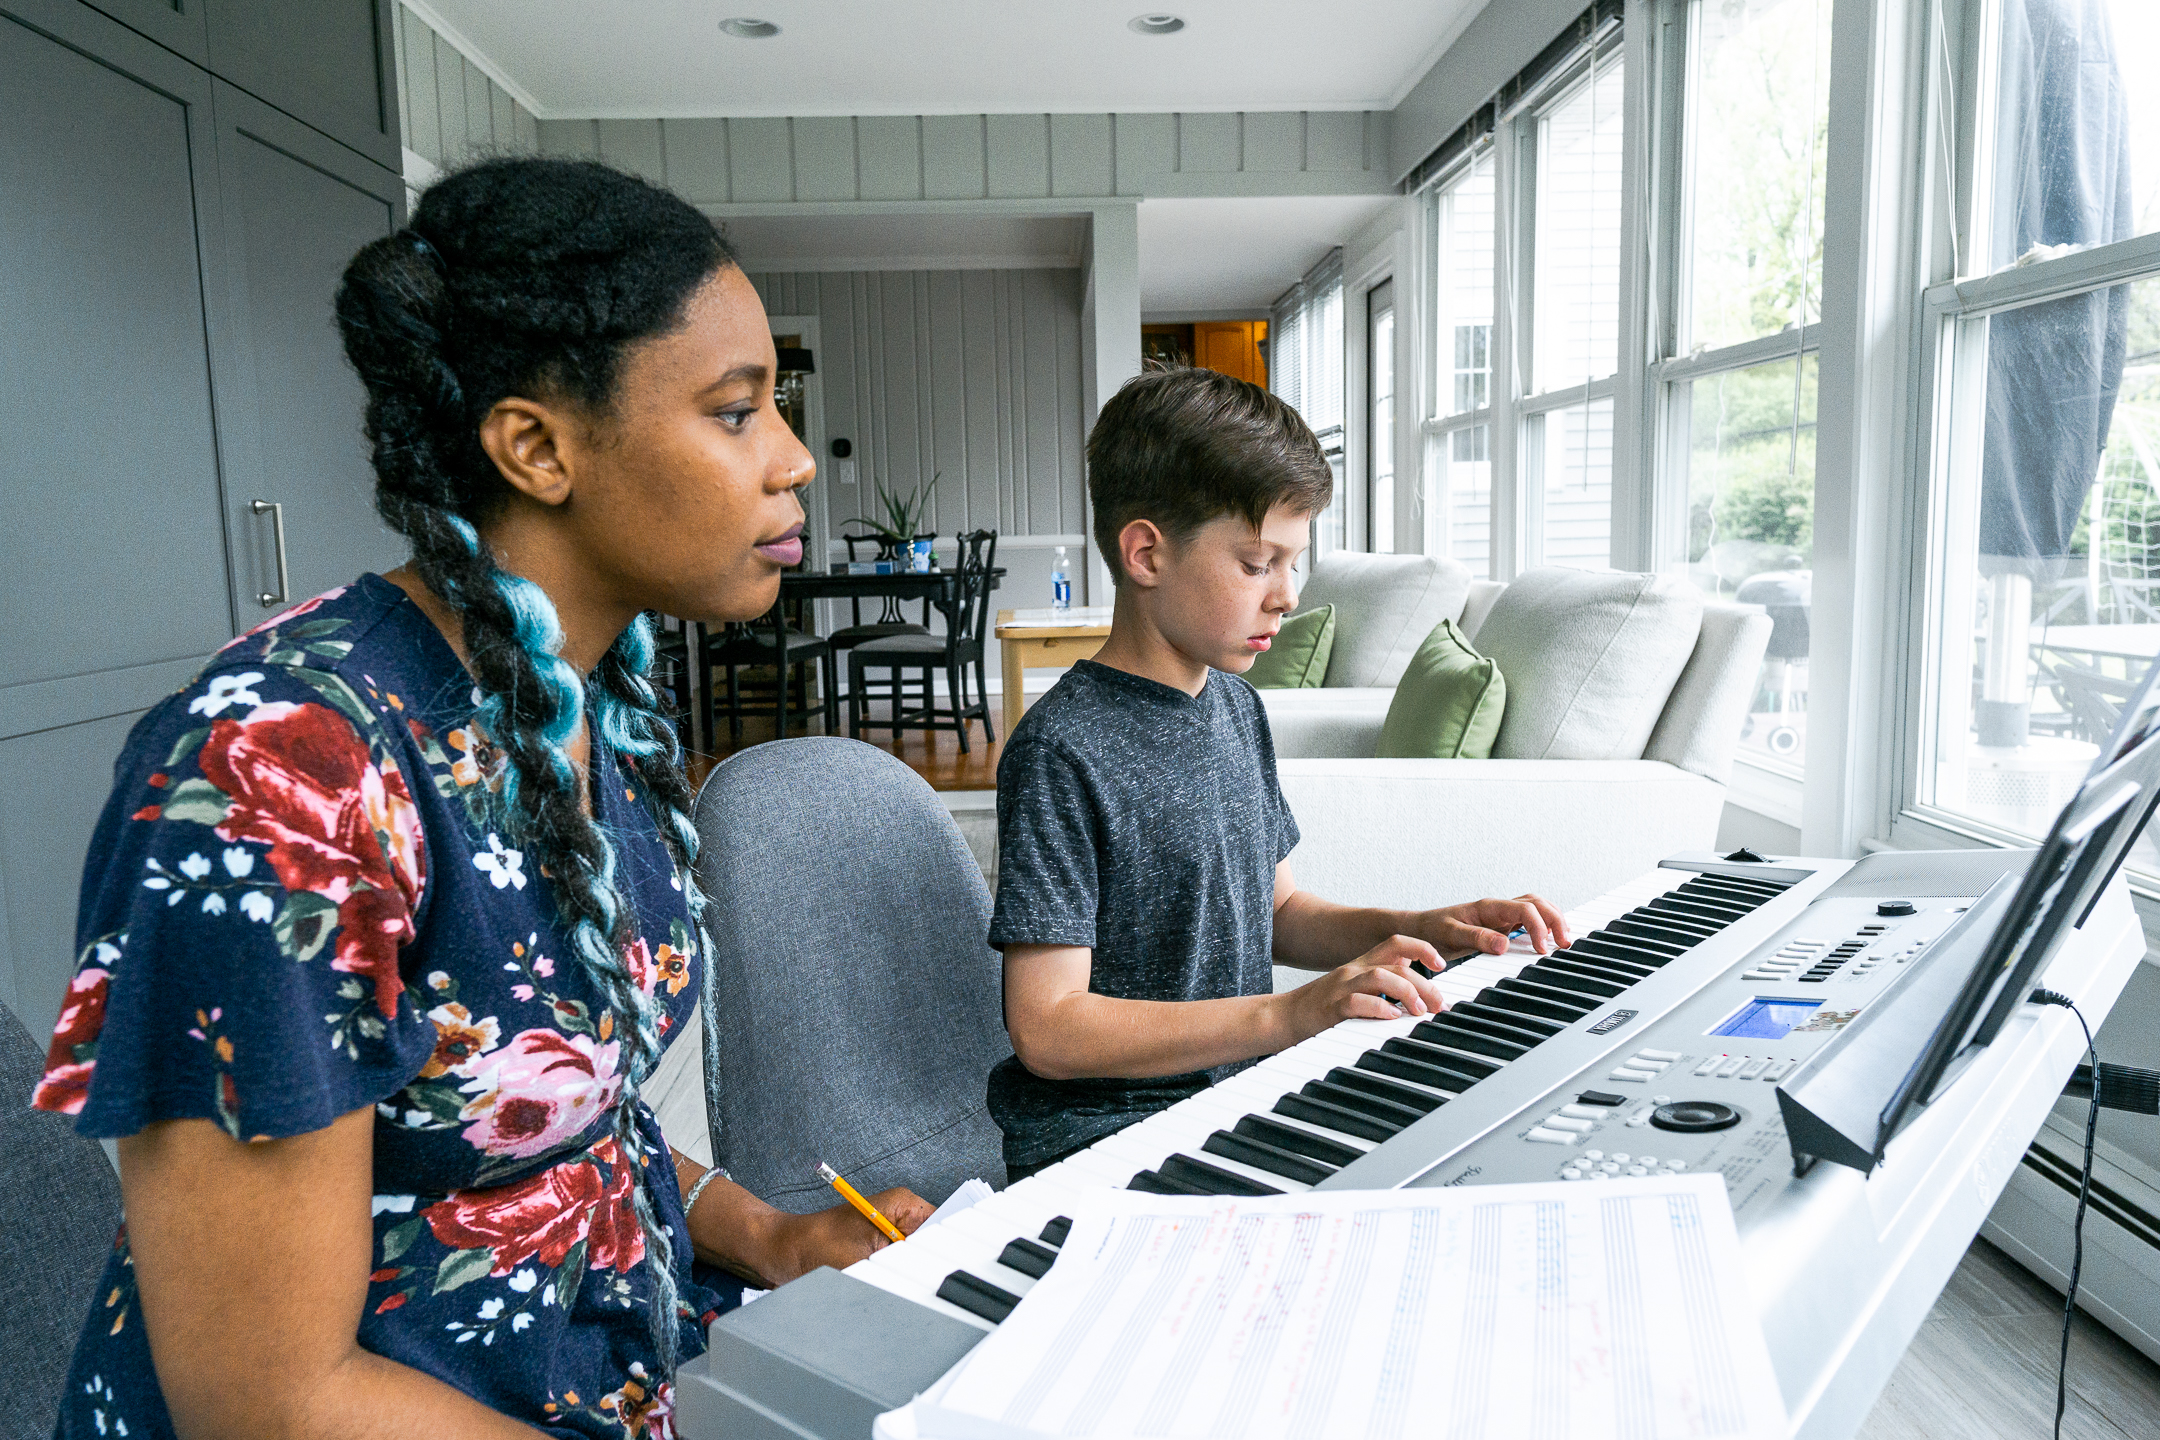 woman teaching younger student piano